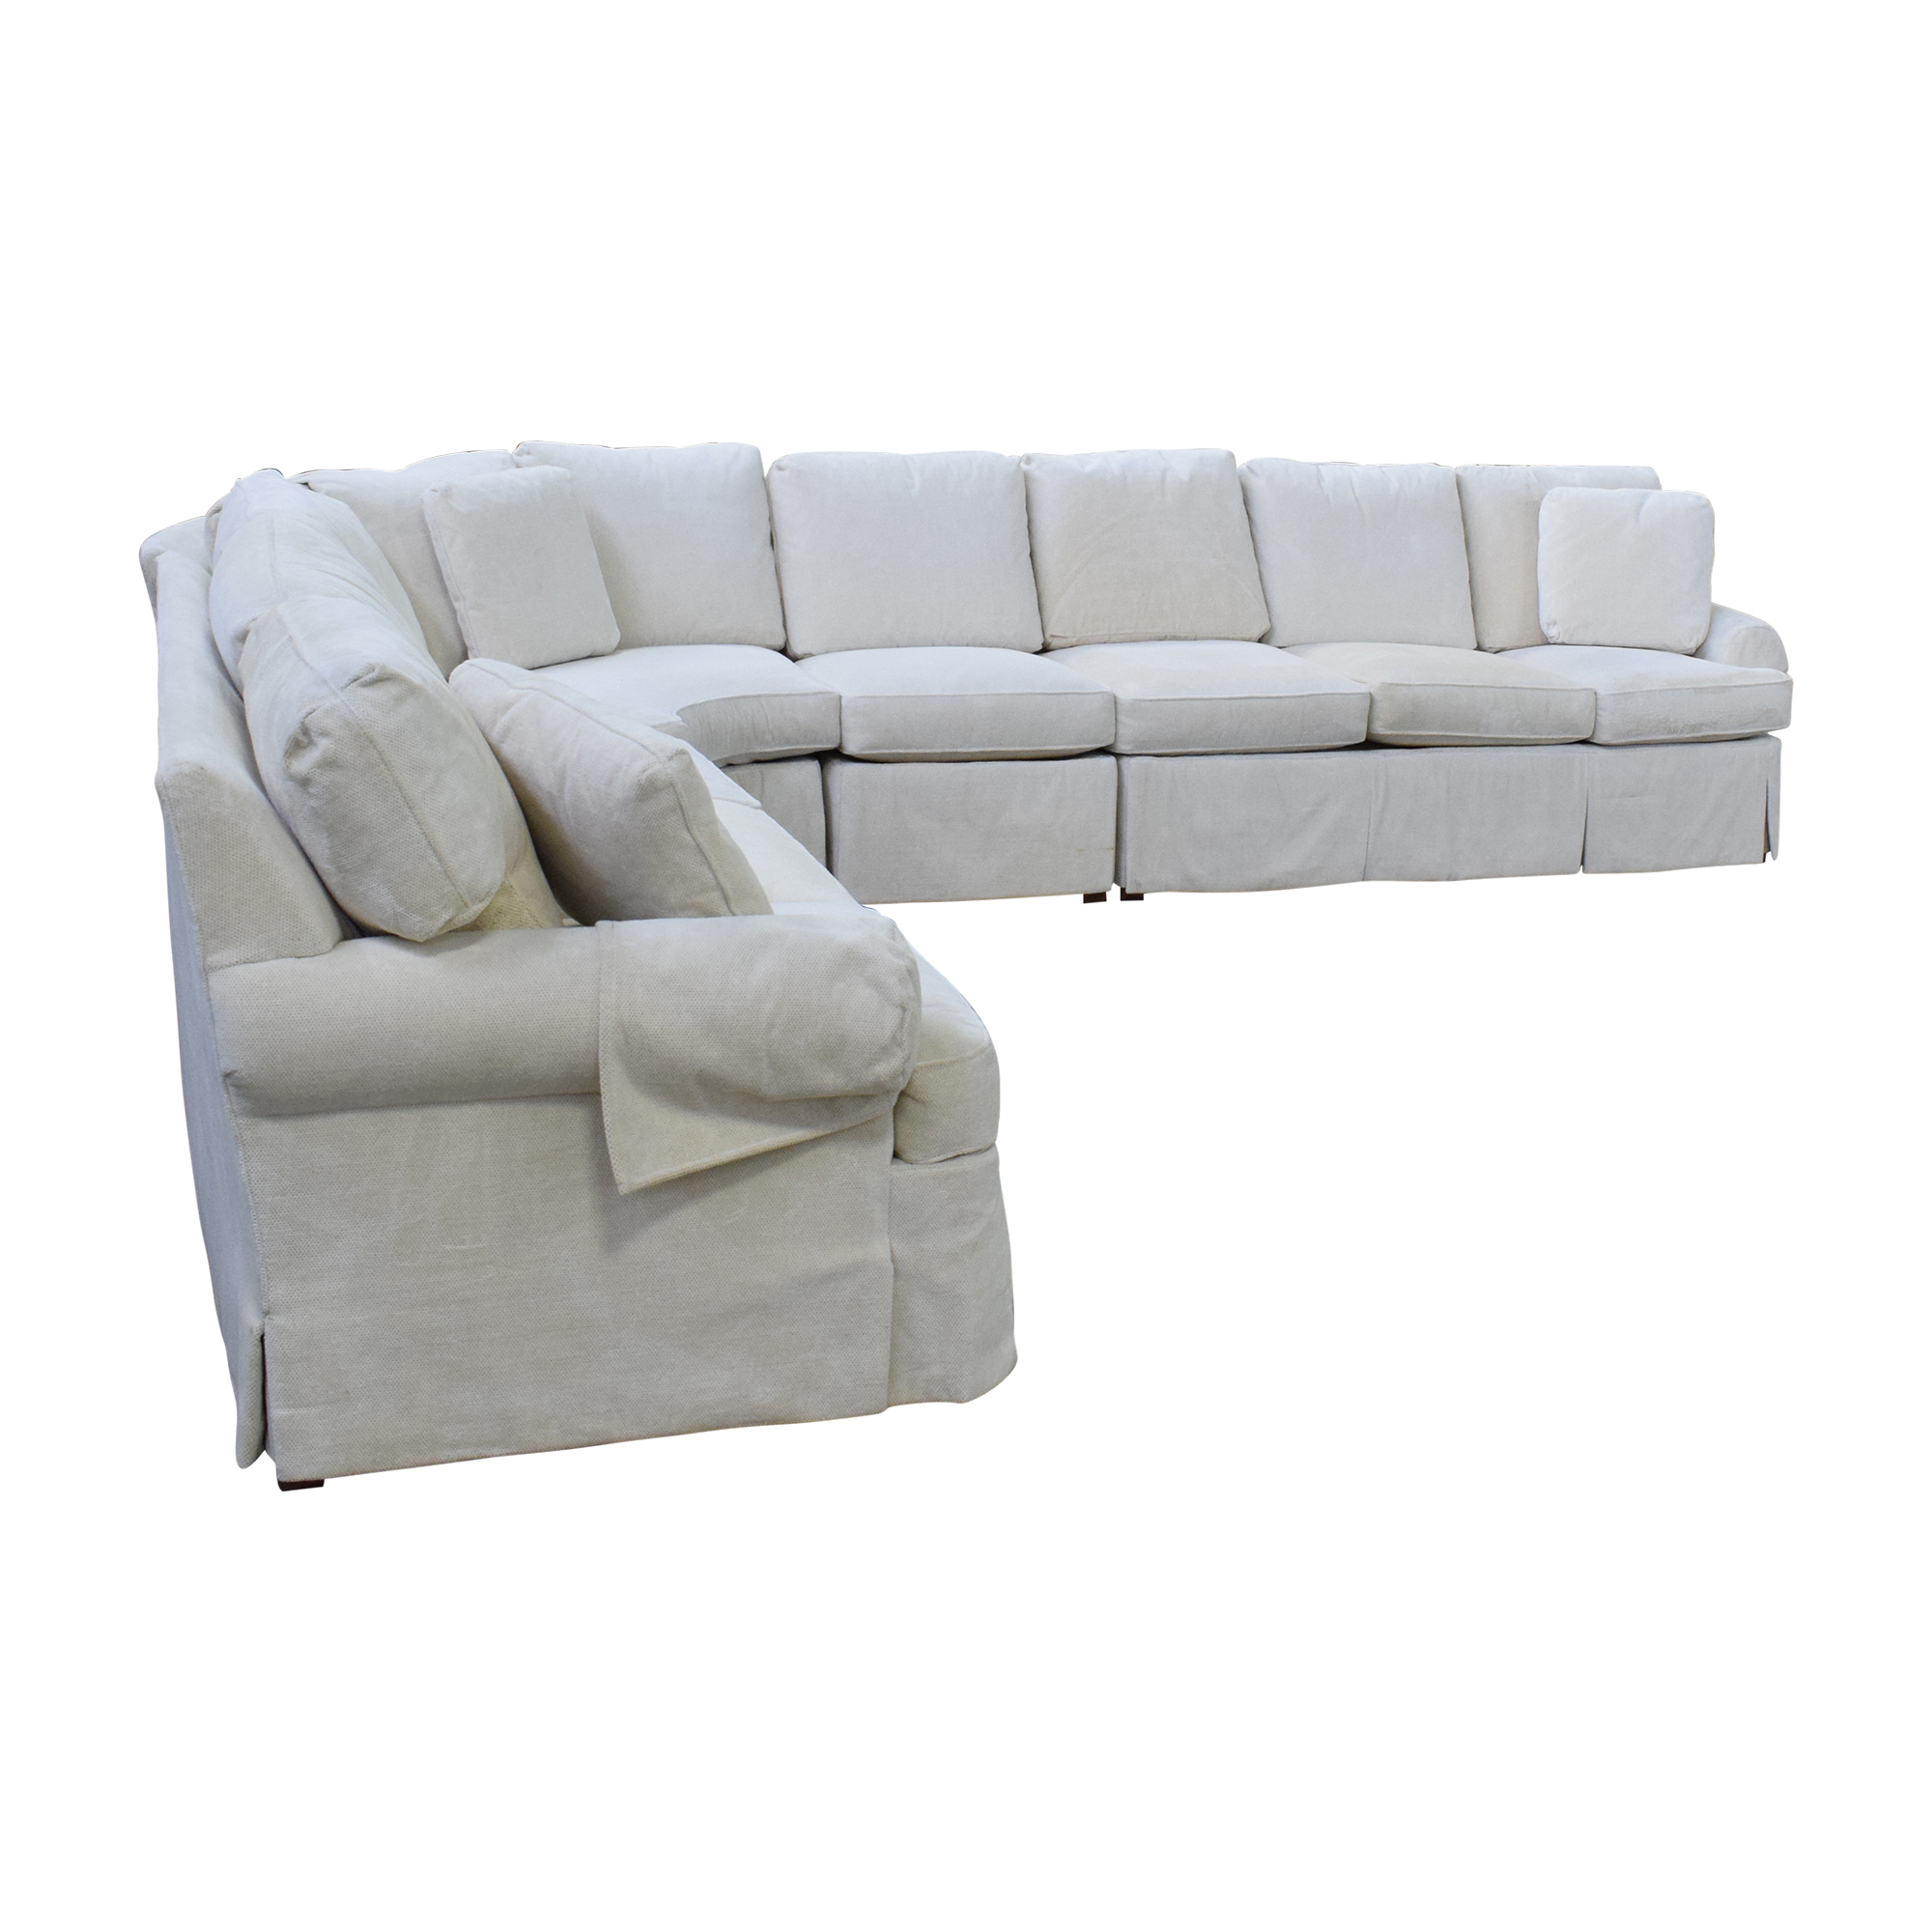 Hickory Chair Hickory Chair Sovereign Curved Sectional Sofa ma